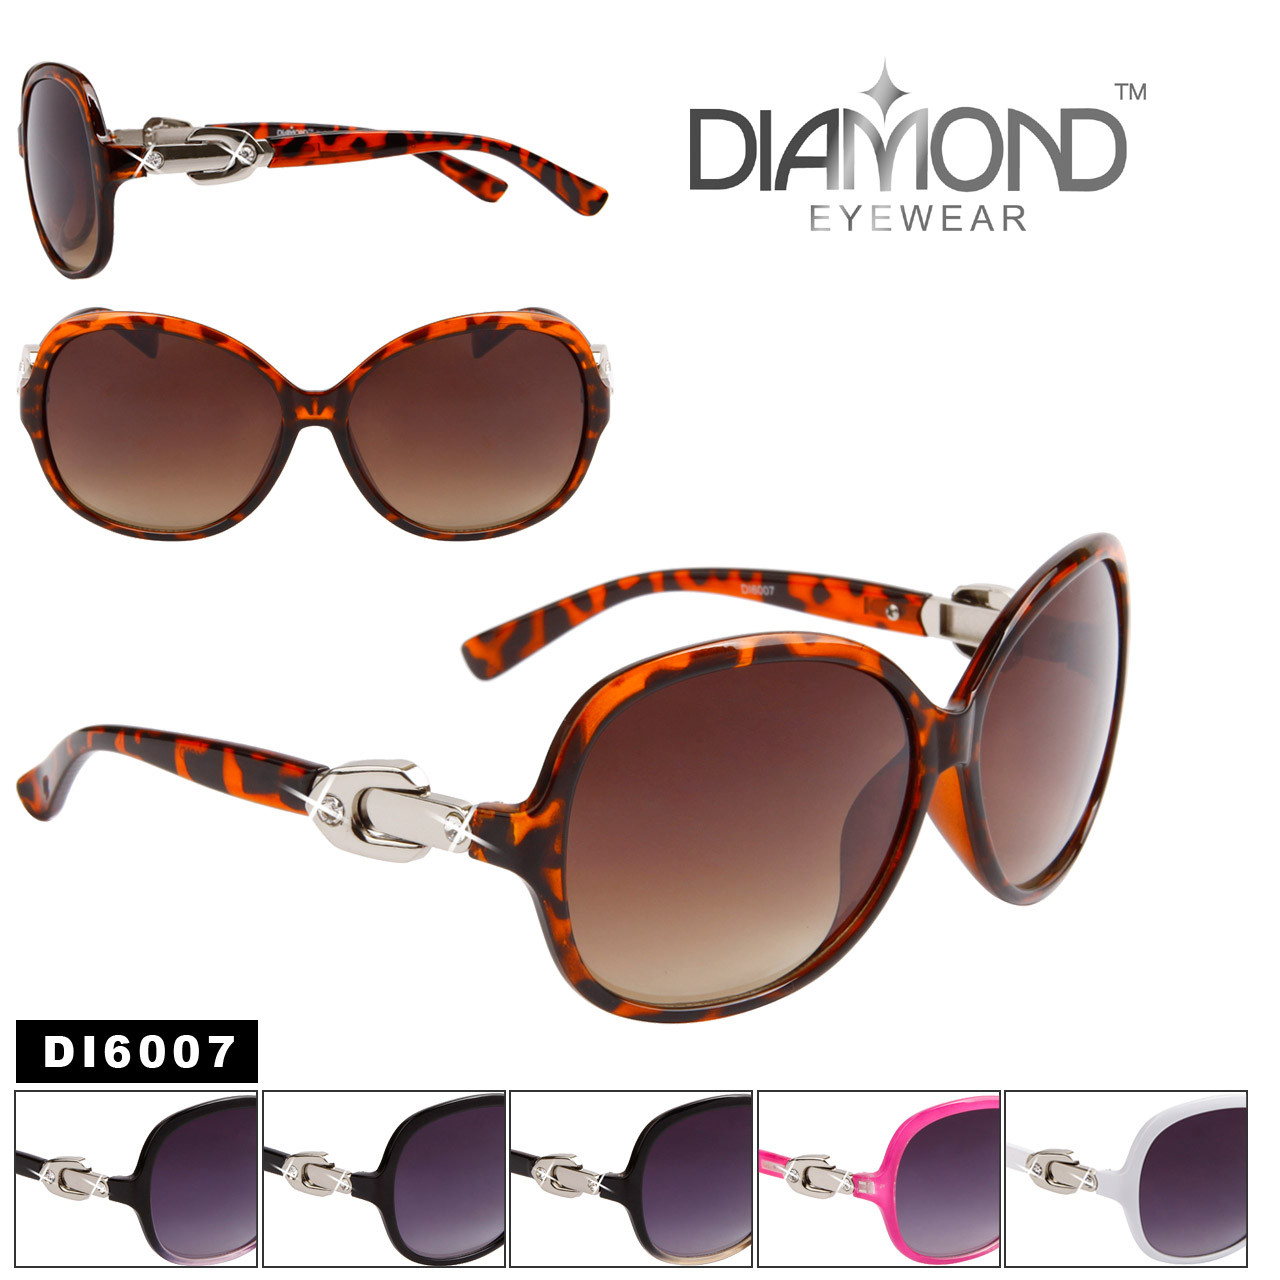 Wholesale Diamond™ Eyewear Sunglasses - DI6007